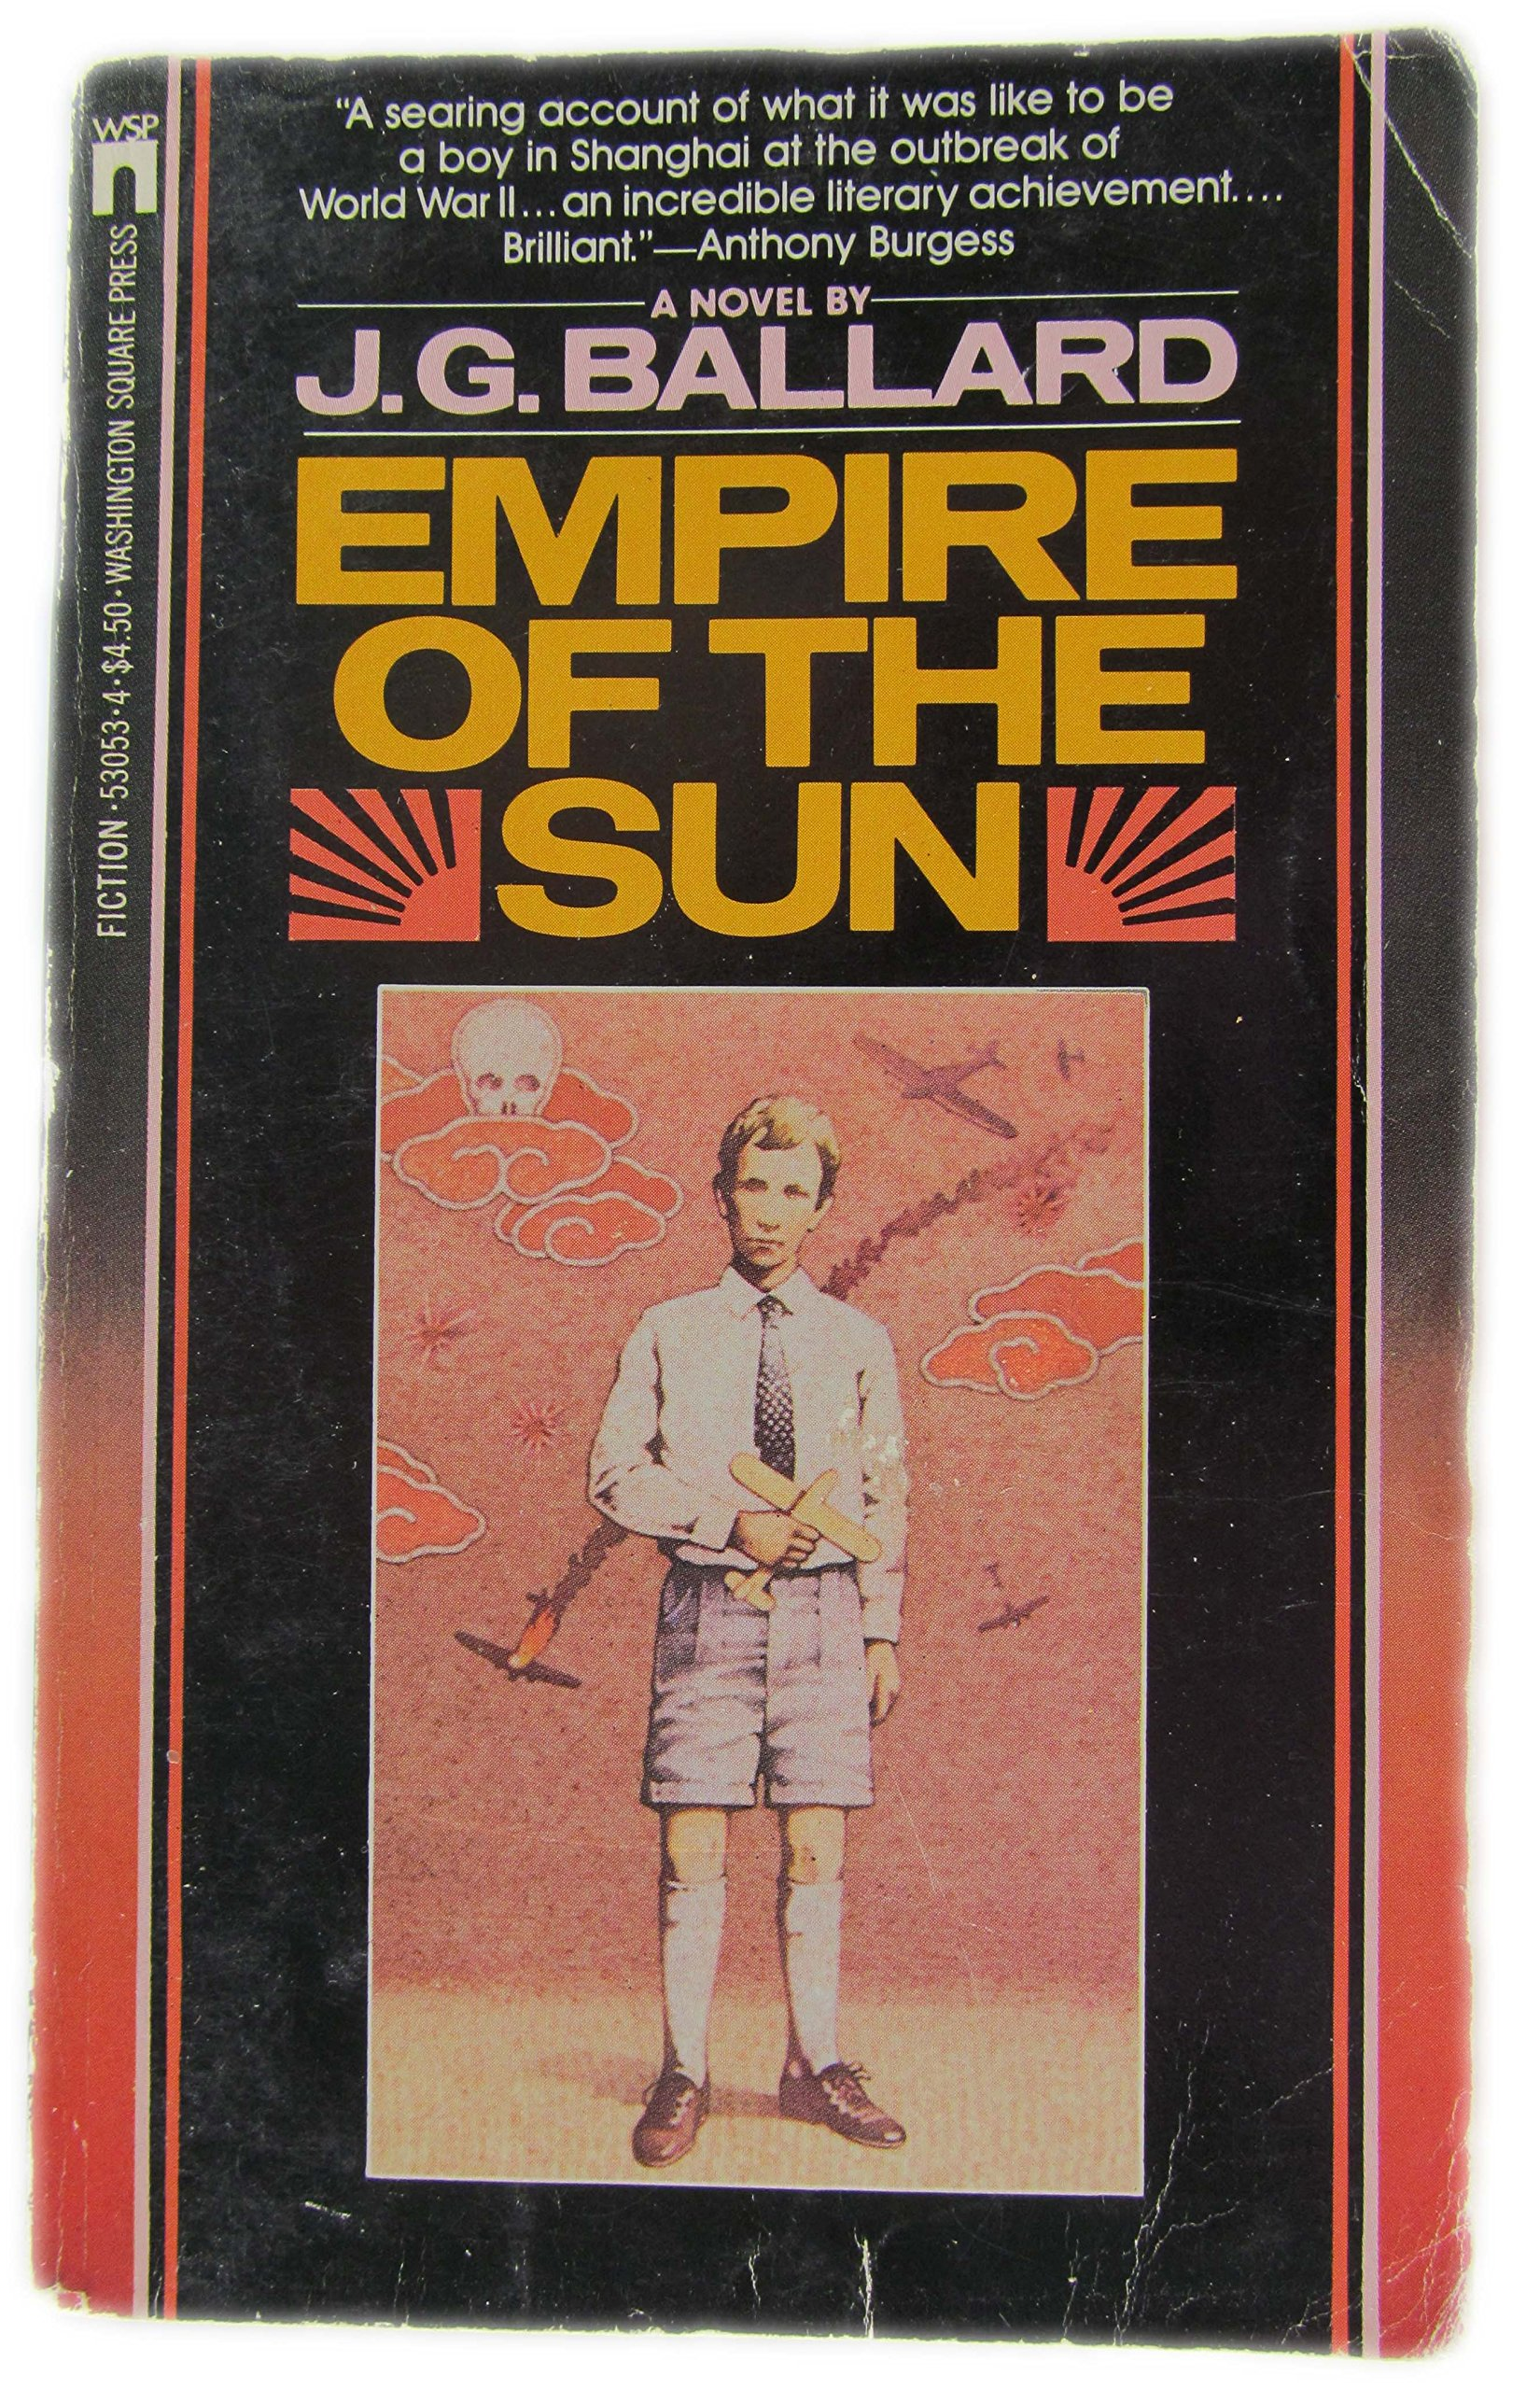 Empire of the Sun, J. G. Ballard